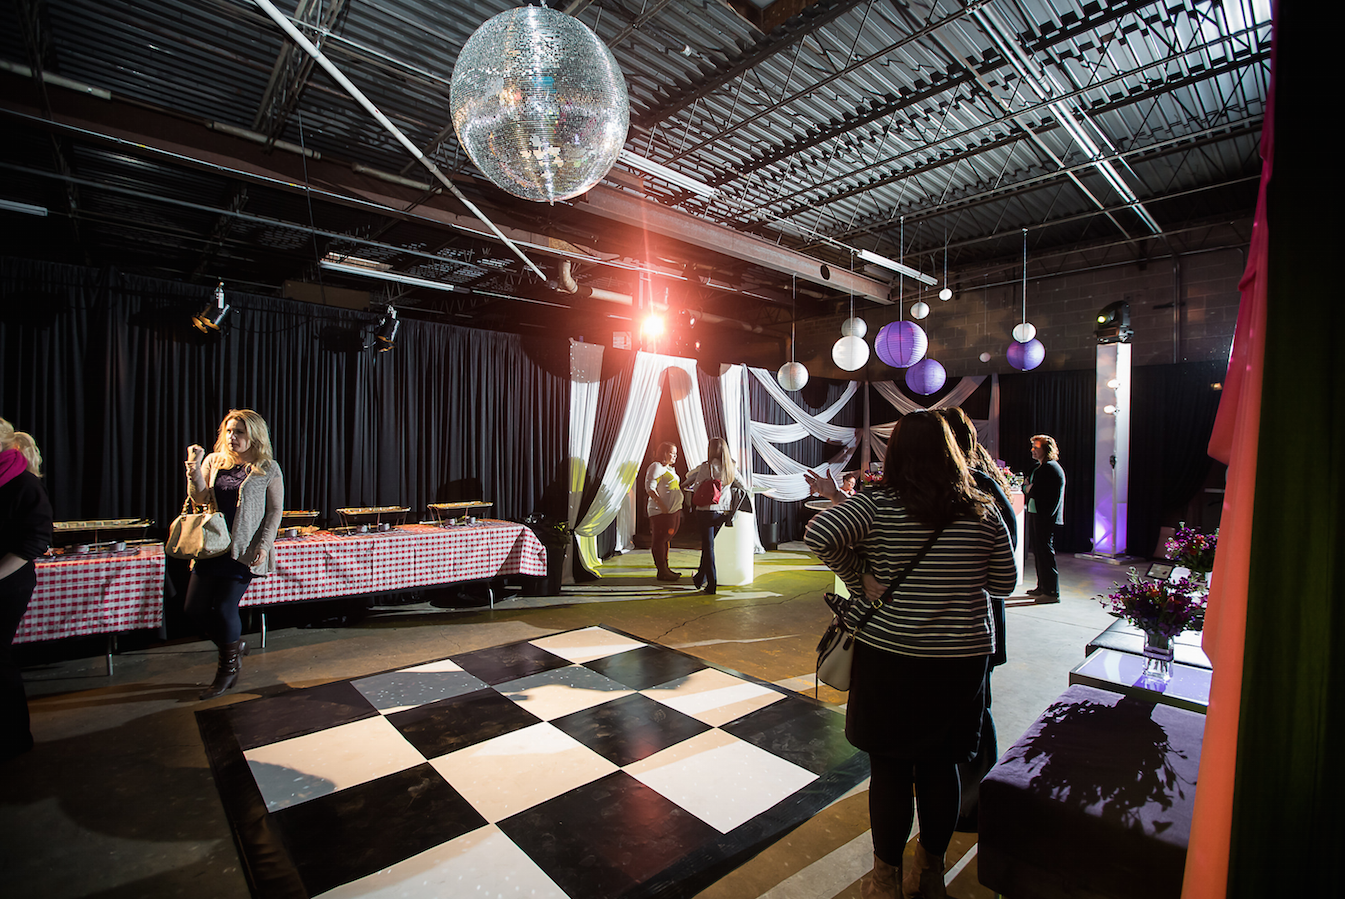 Disco Ball from Midwest Event Solutions | Photo Courtesy Just Love Me Photography